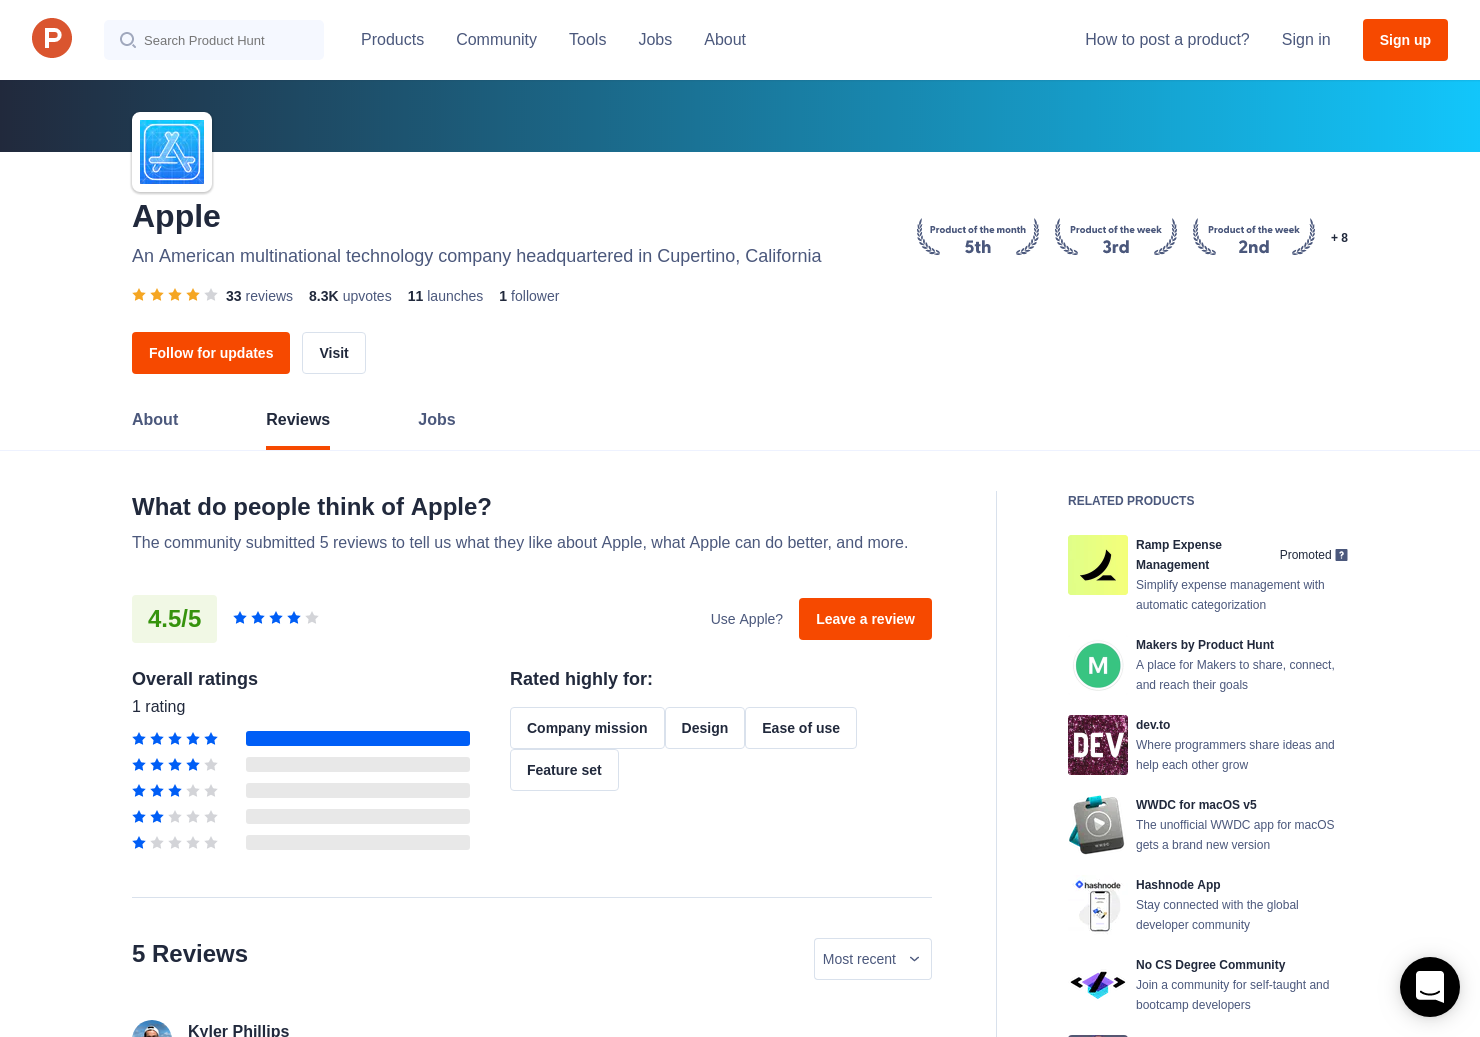 2 Swift Playgrounds Reviews - Pros, Cons and Rating